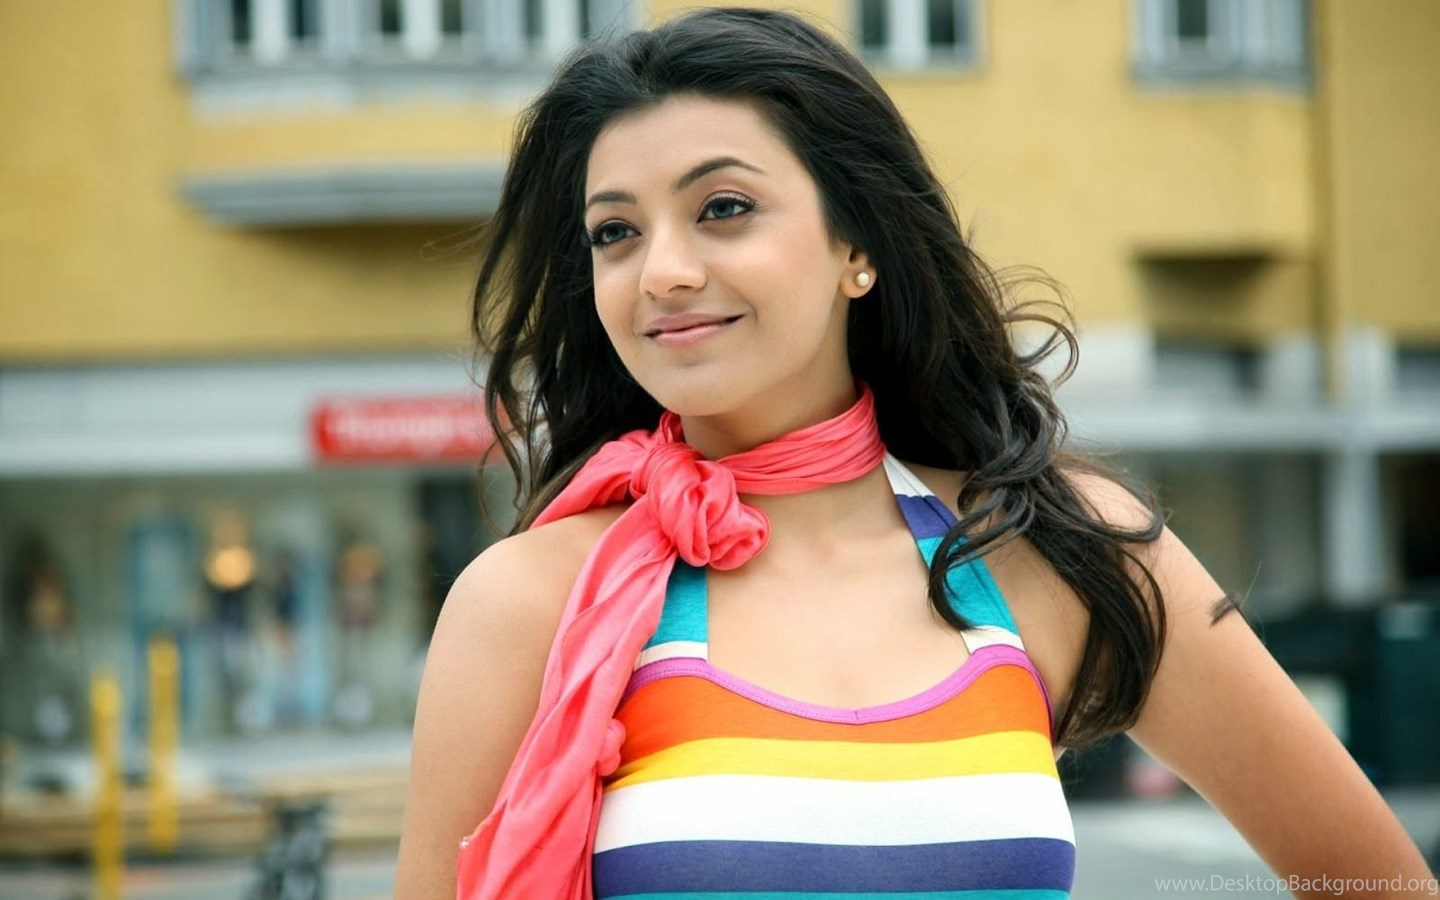 Wallpaper For Android Kajal Agarwal Indian Beautiful Girl